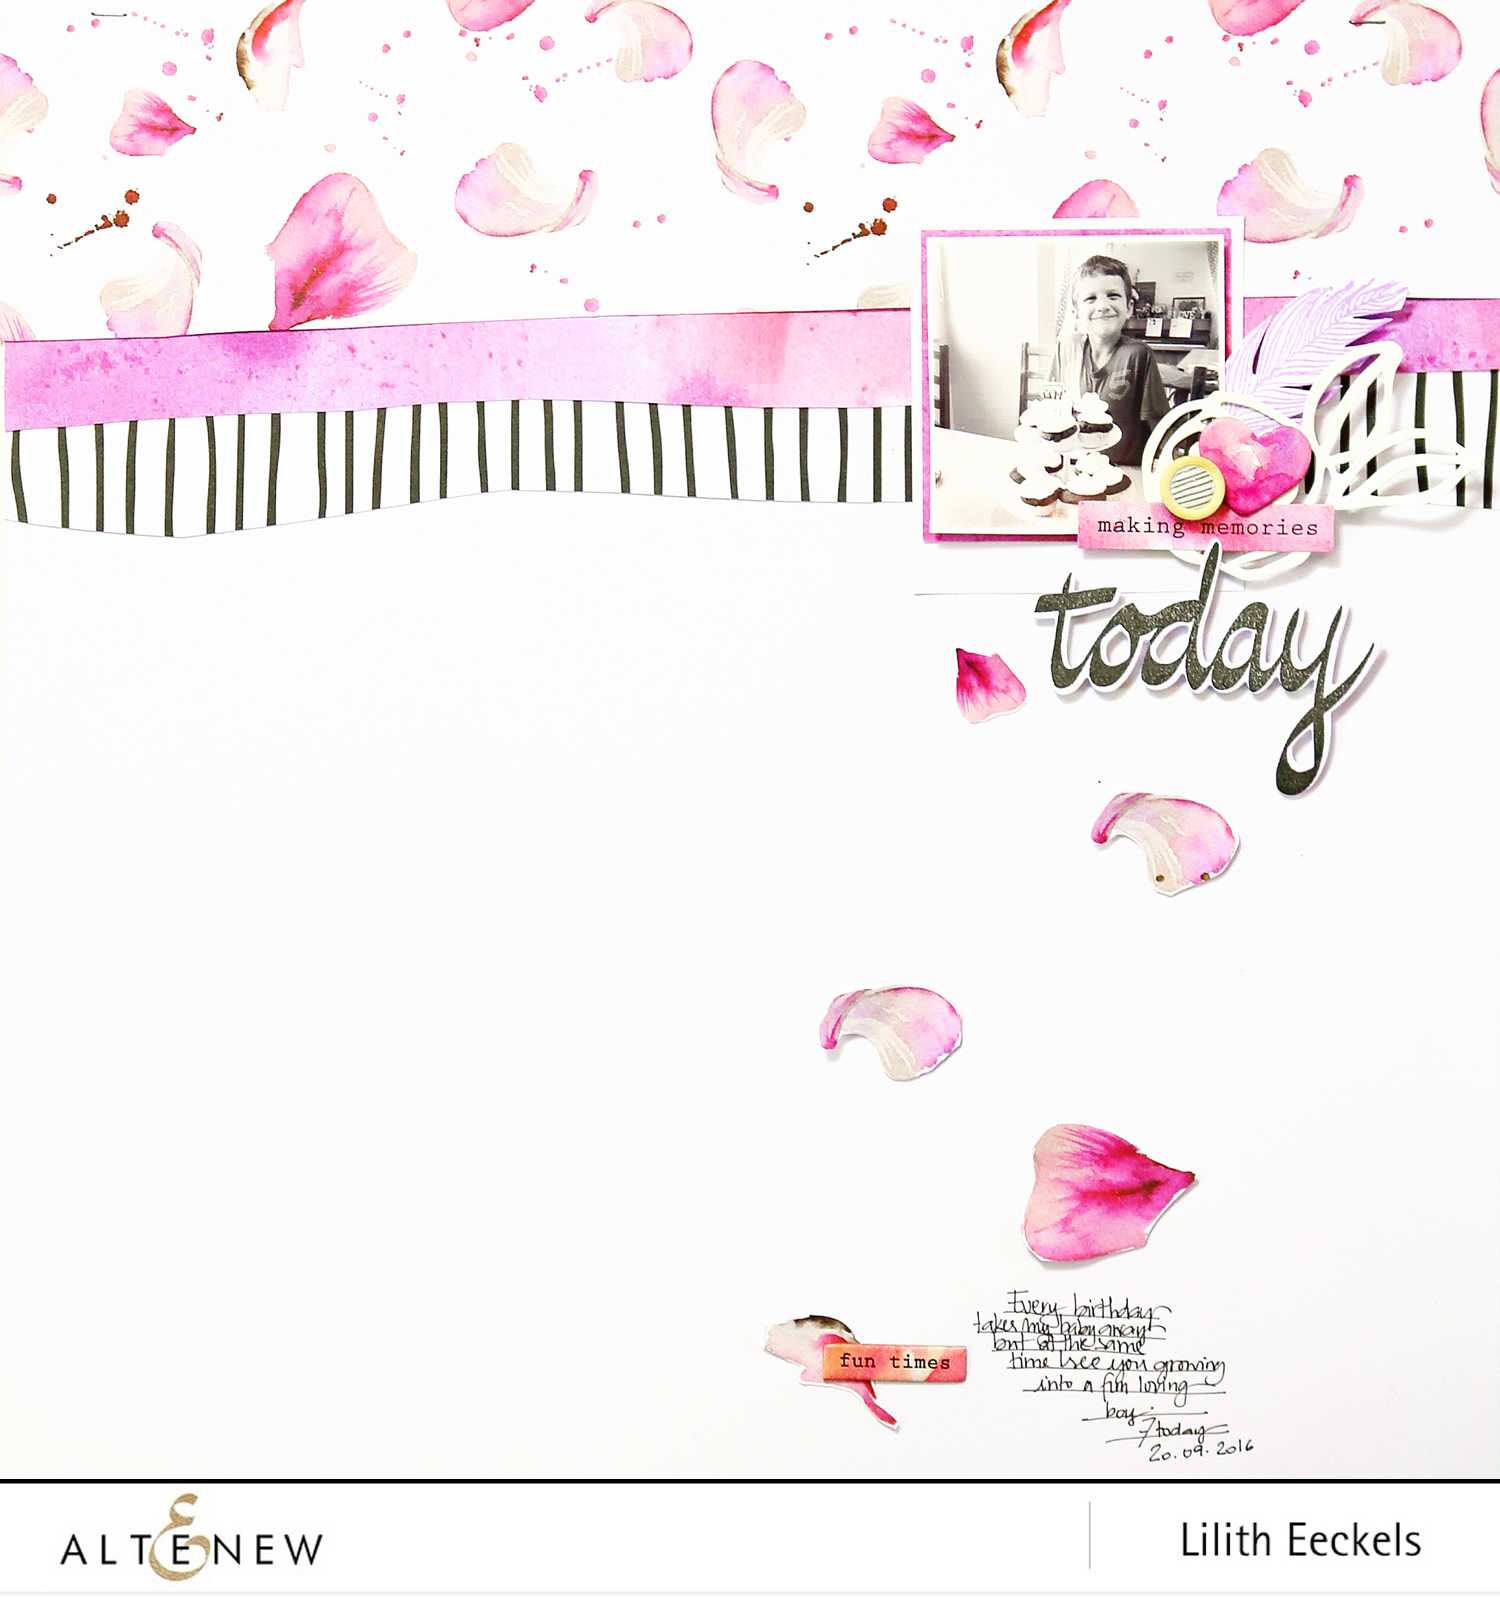 Video: Today (Super Script stamp and Reflection kit)